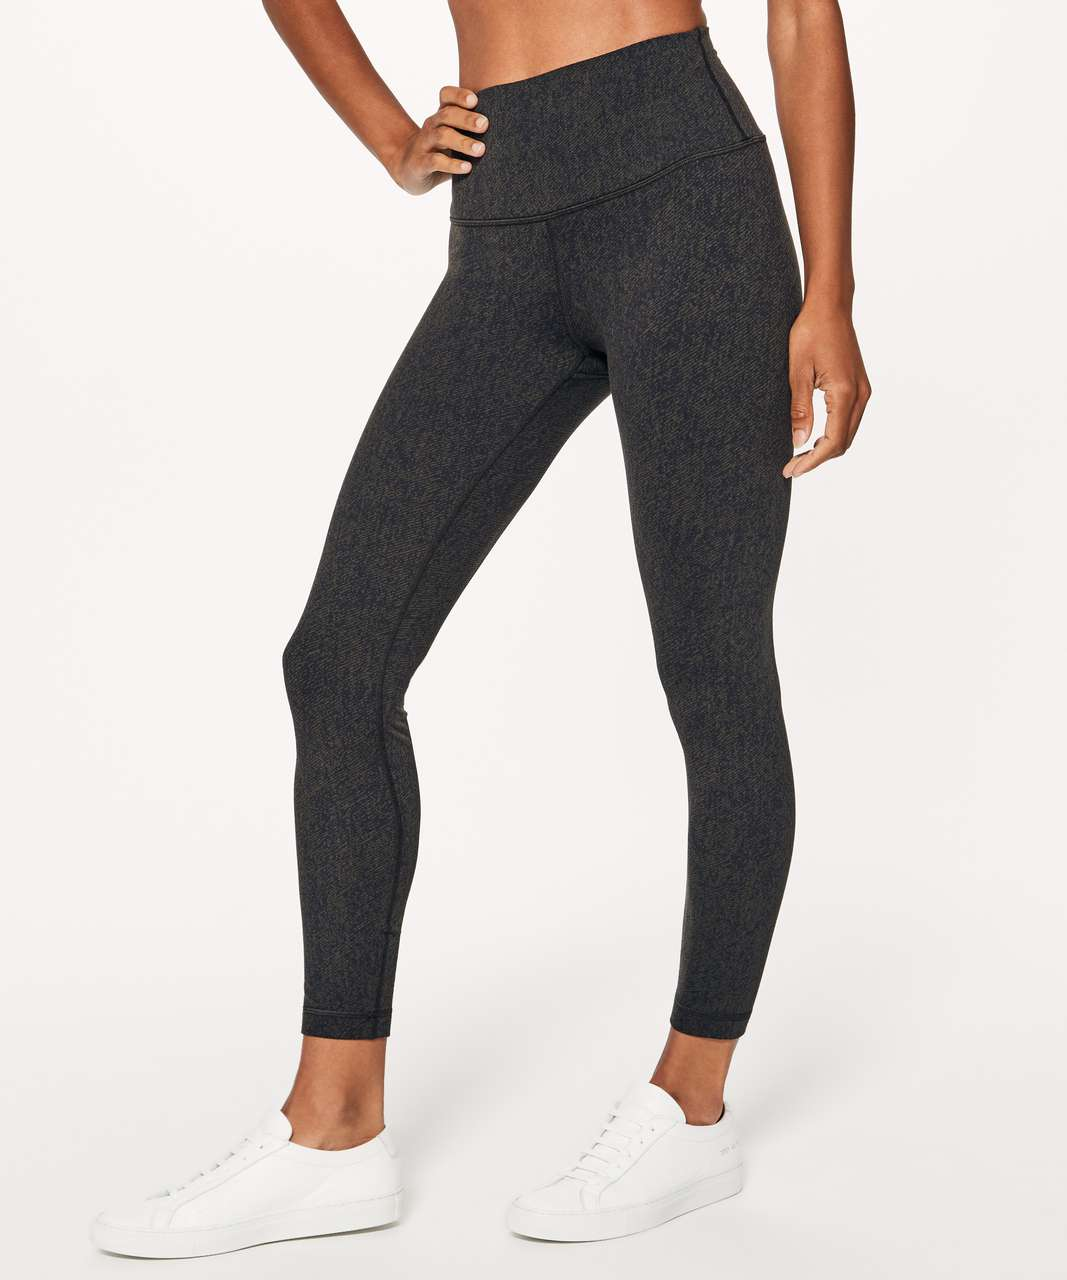 "Lululemon Wunder Under Hi-Rise 7/8 Tight (25"") - Irregular Denim Twill Print Dark Olive Black"